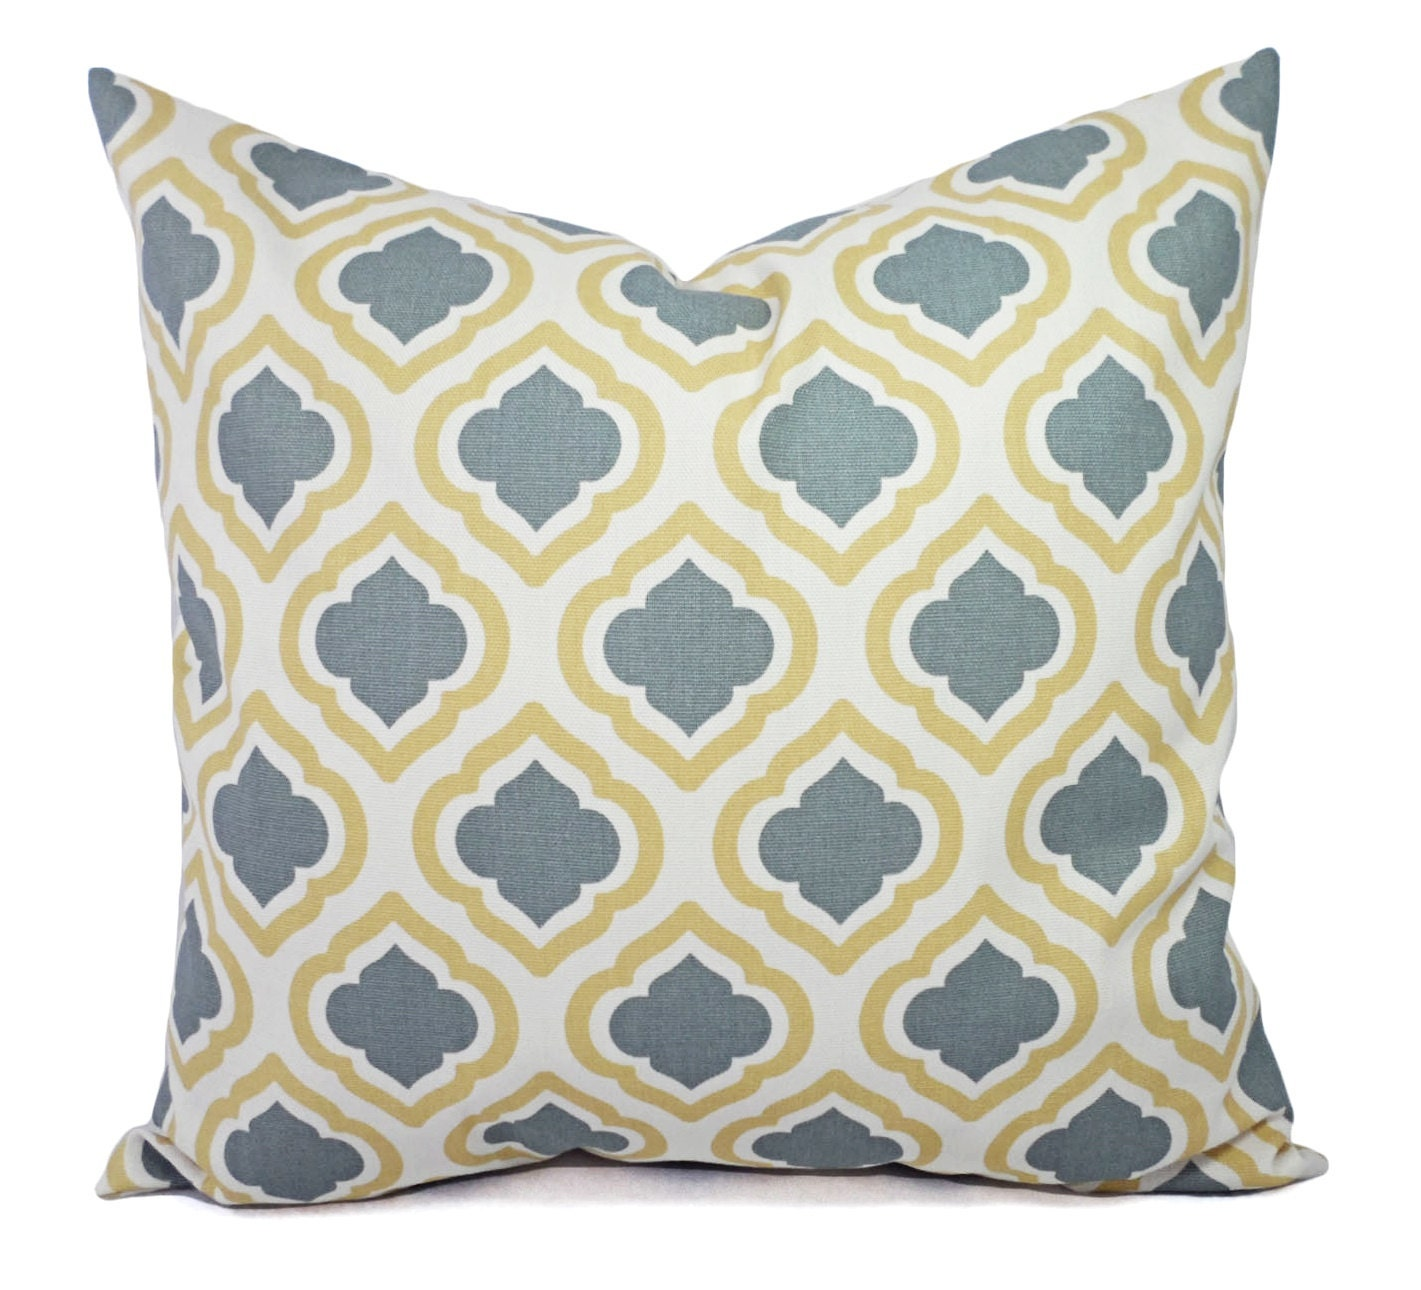 Yellow And Grey Throw Pillow Covers : Two Yellow and Grey Pillow Covers Saffron Yellow Grey and